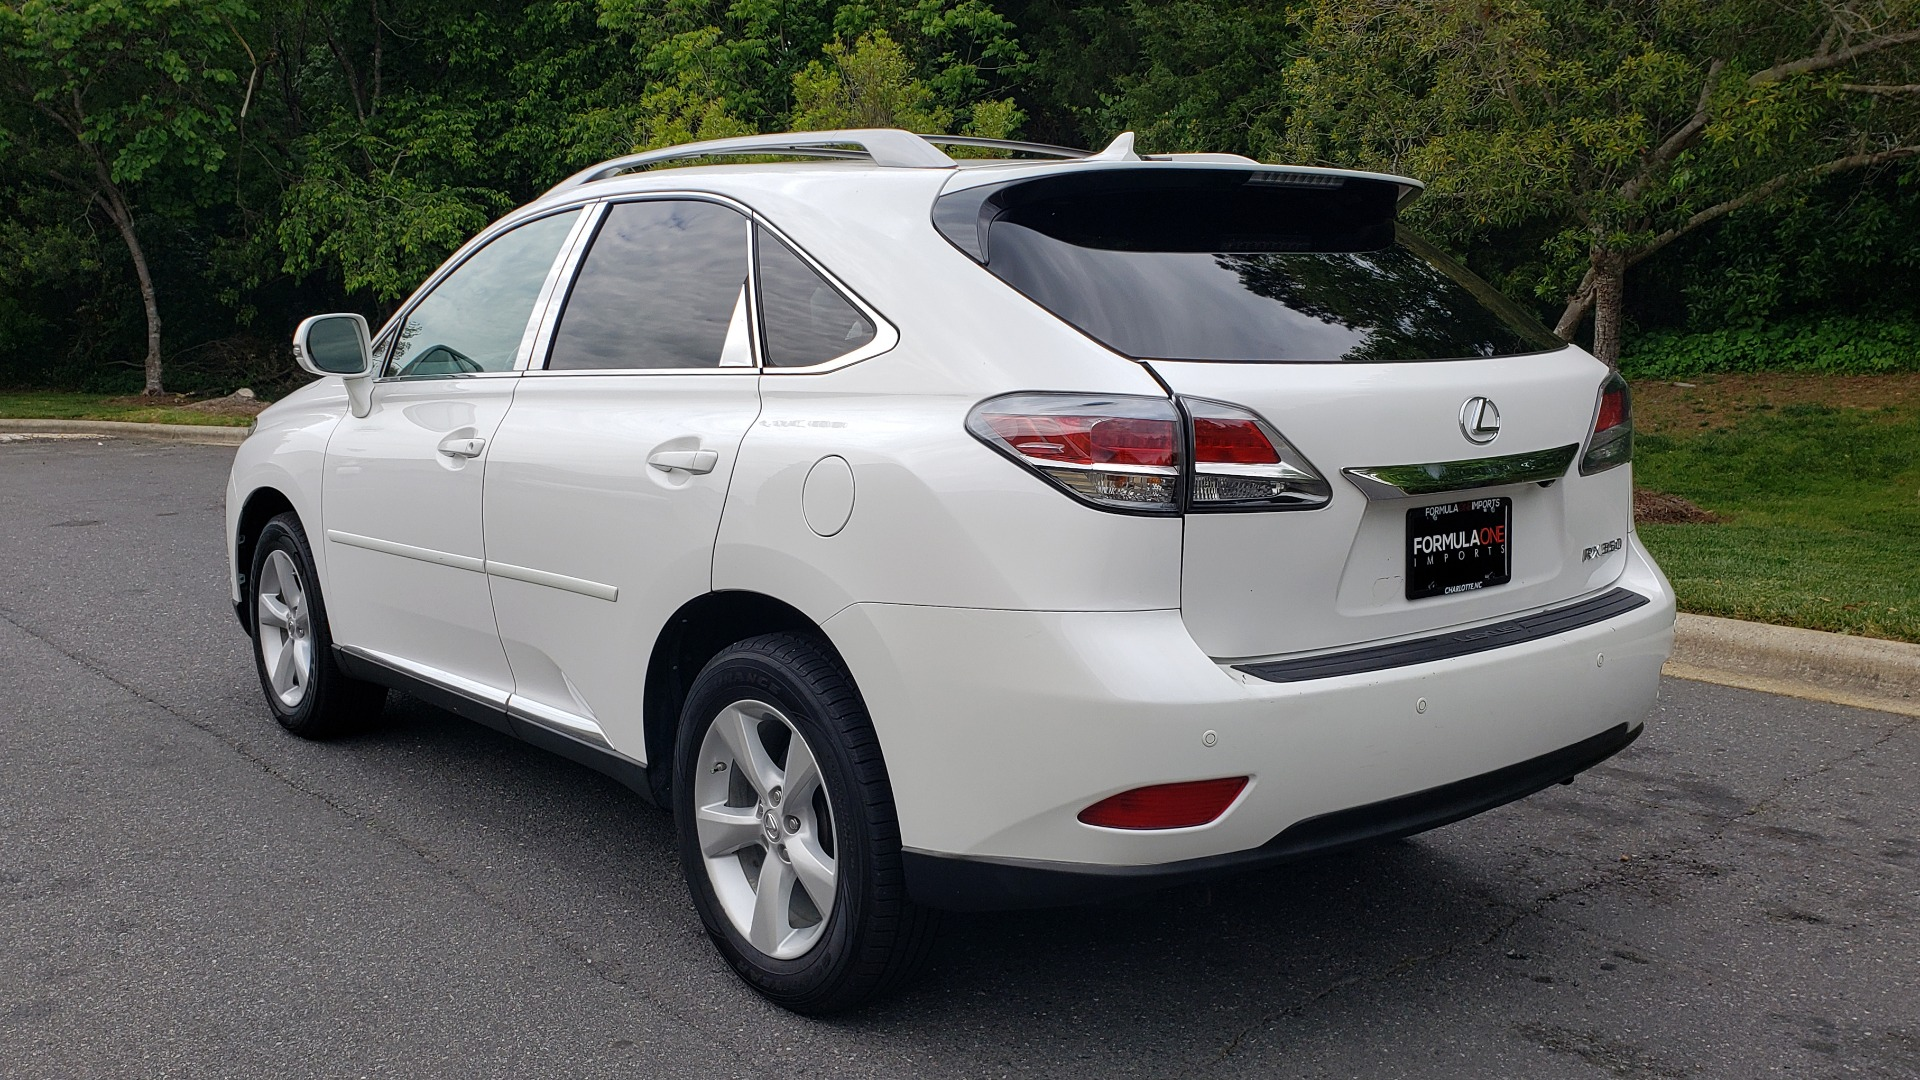 Used 2013 Lexus RX 350 PREMIUM PKG / SUNROOF / BSM / PARK ASST / REARVIEW for sale Sold at Formula Imports in Charlotte NC 28227 3